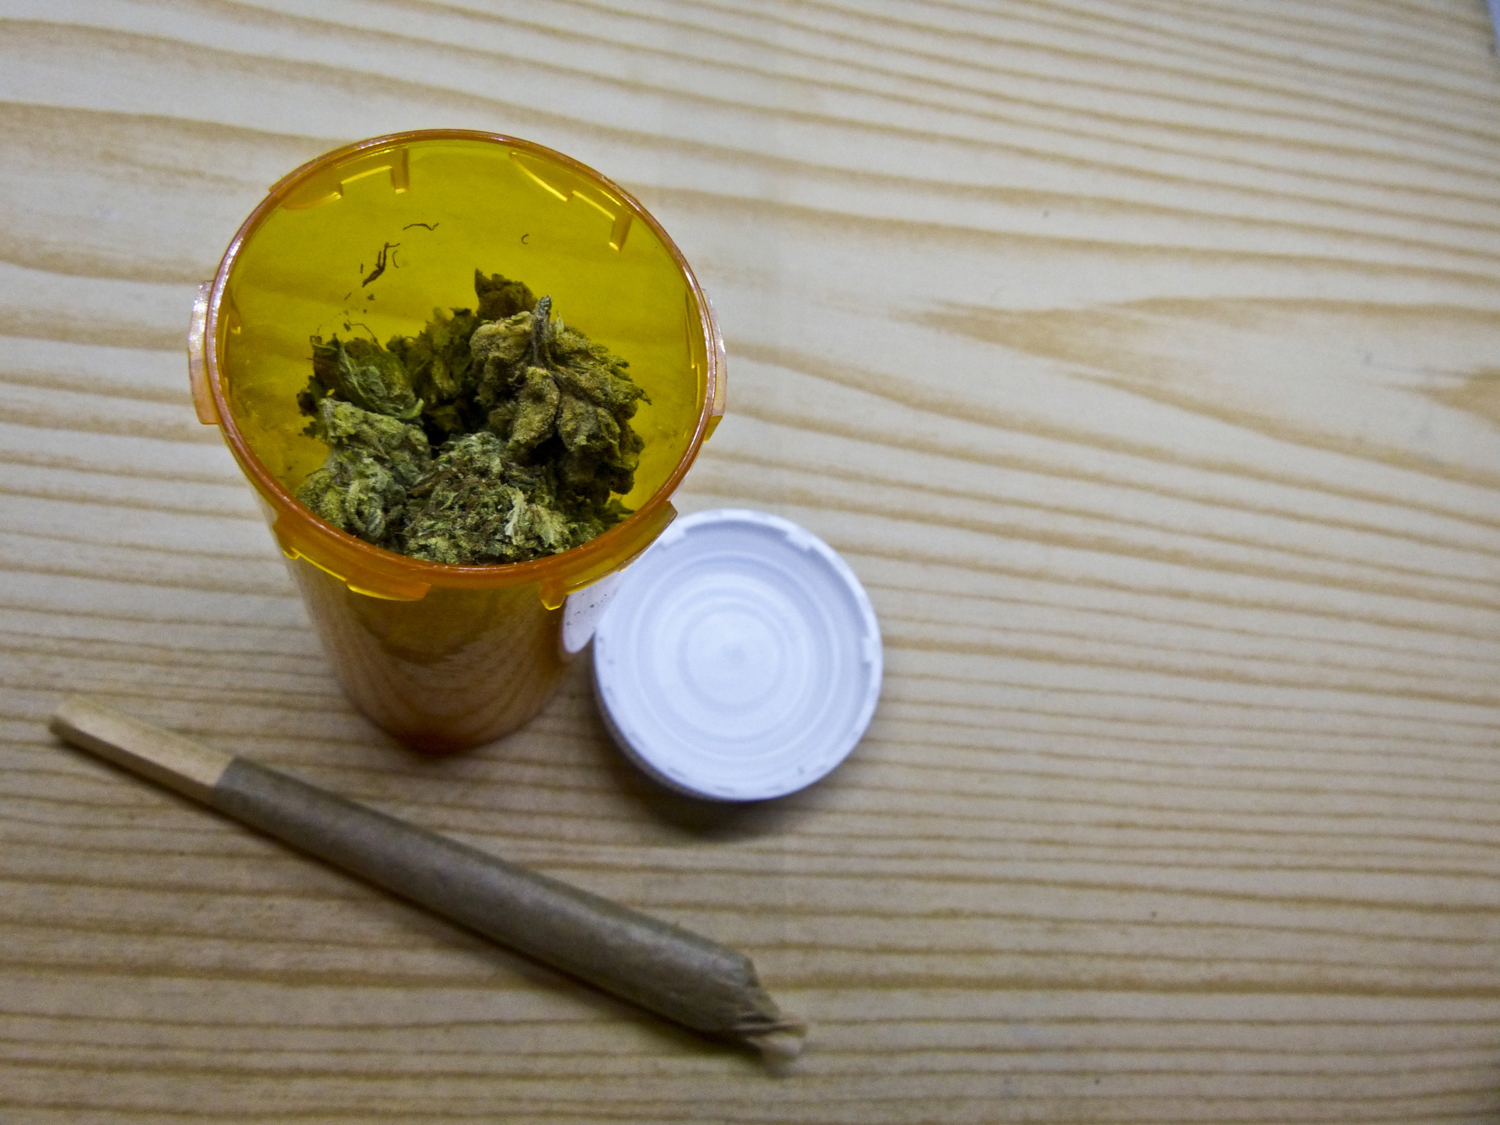 Individuals applying for Section 8 housing can be denied on the basis of medical marijuana usage.